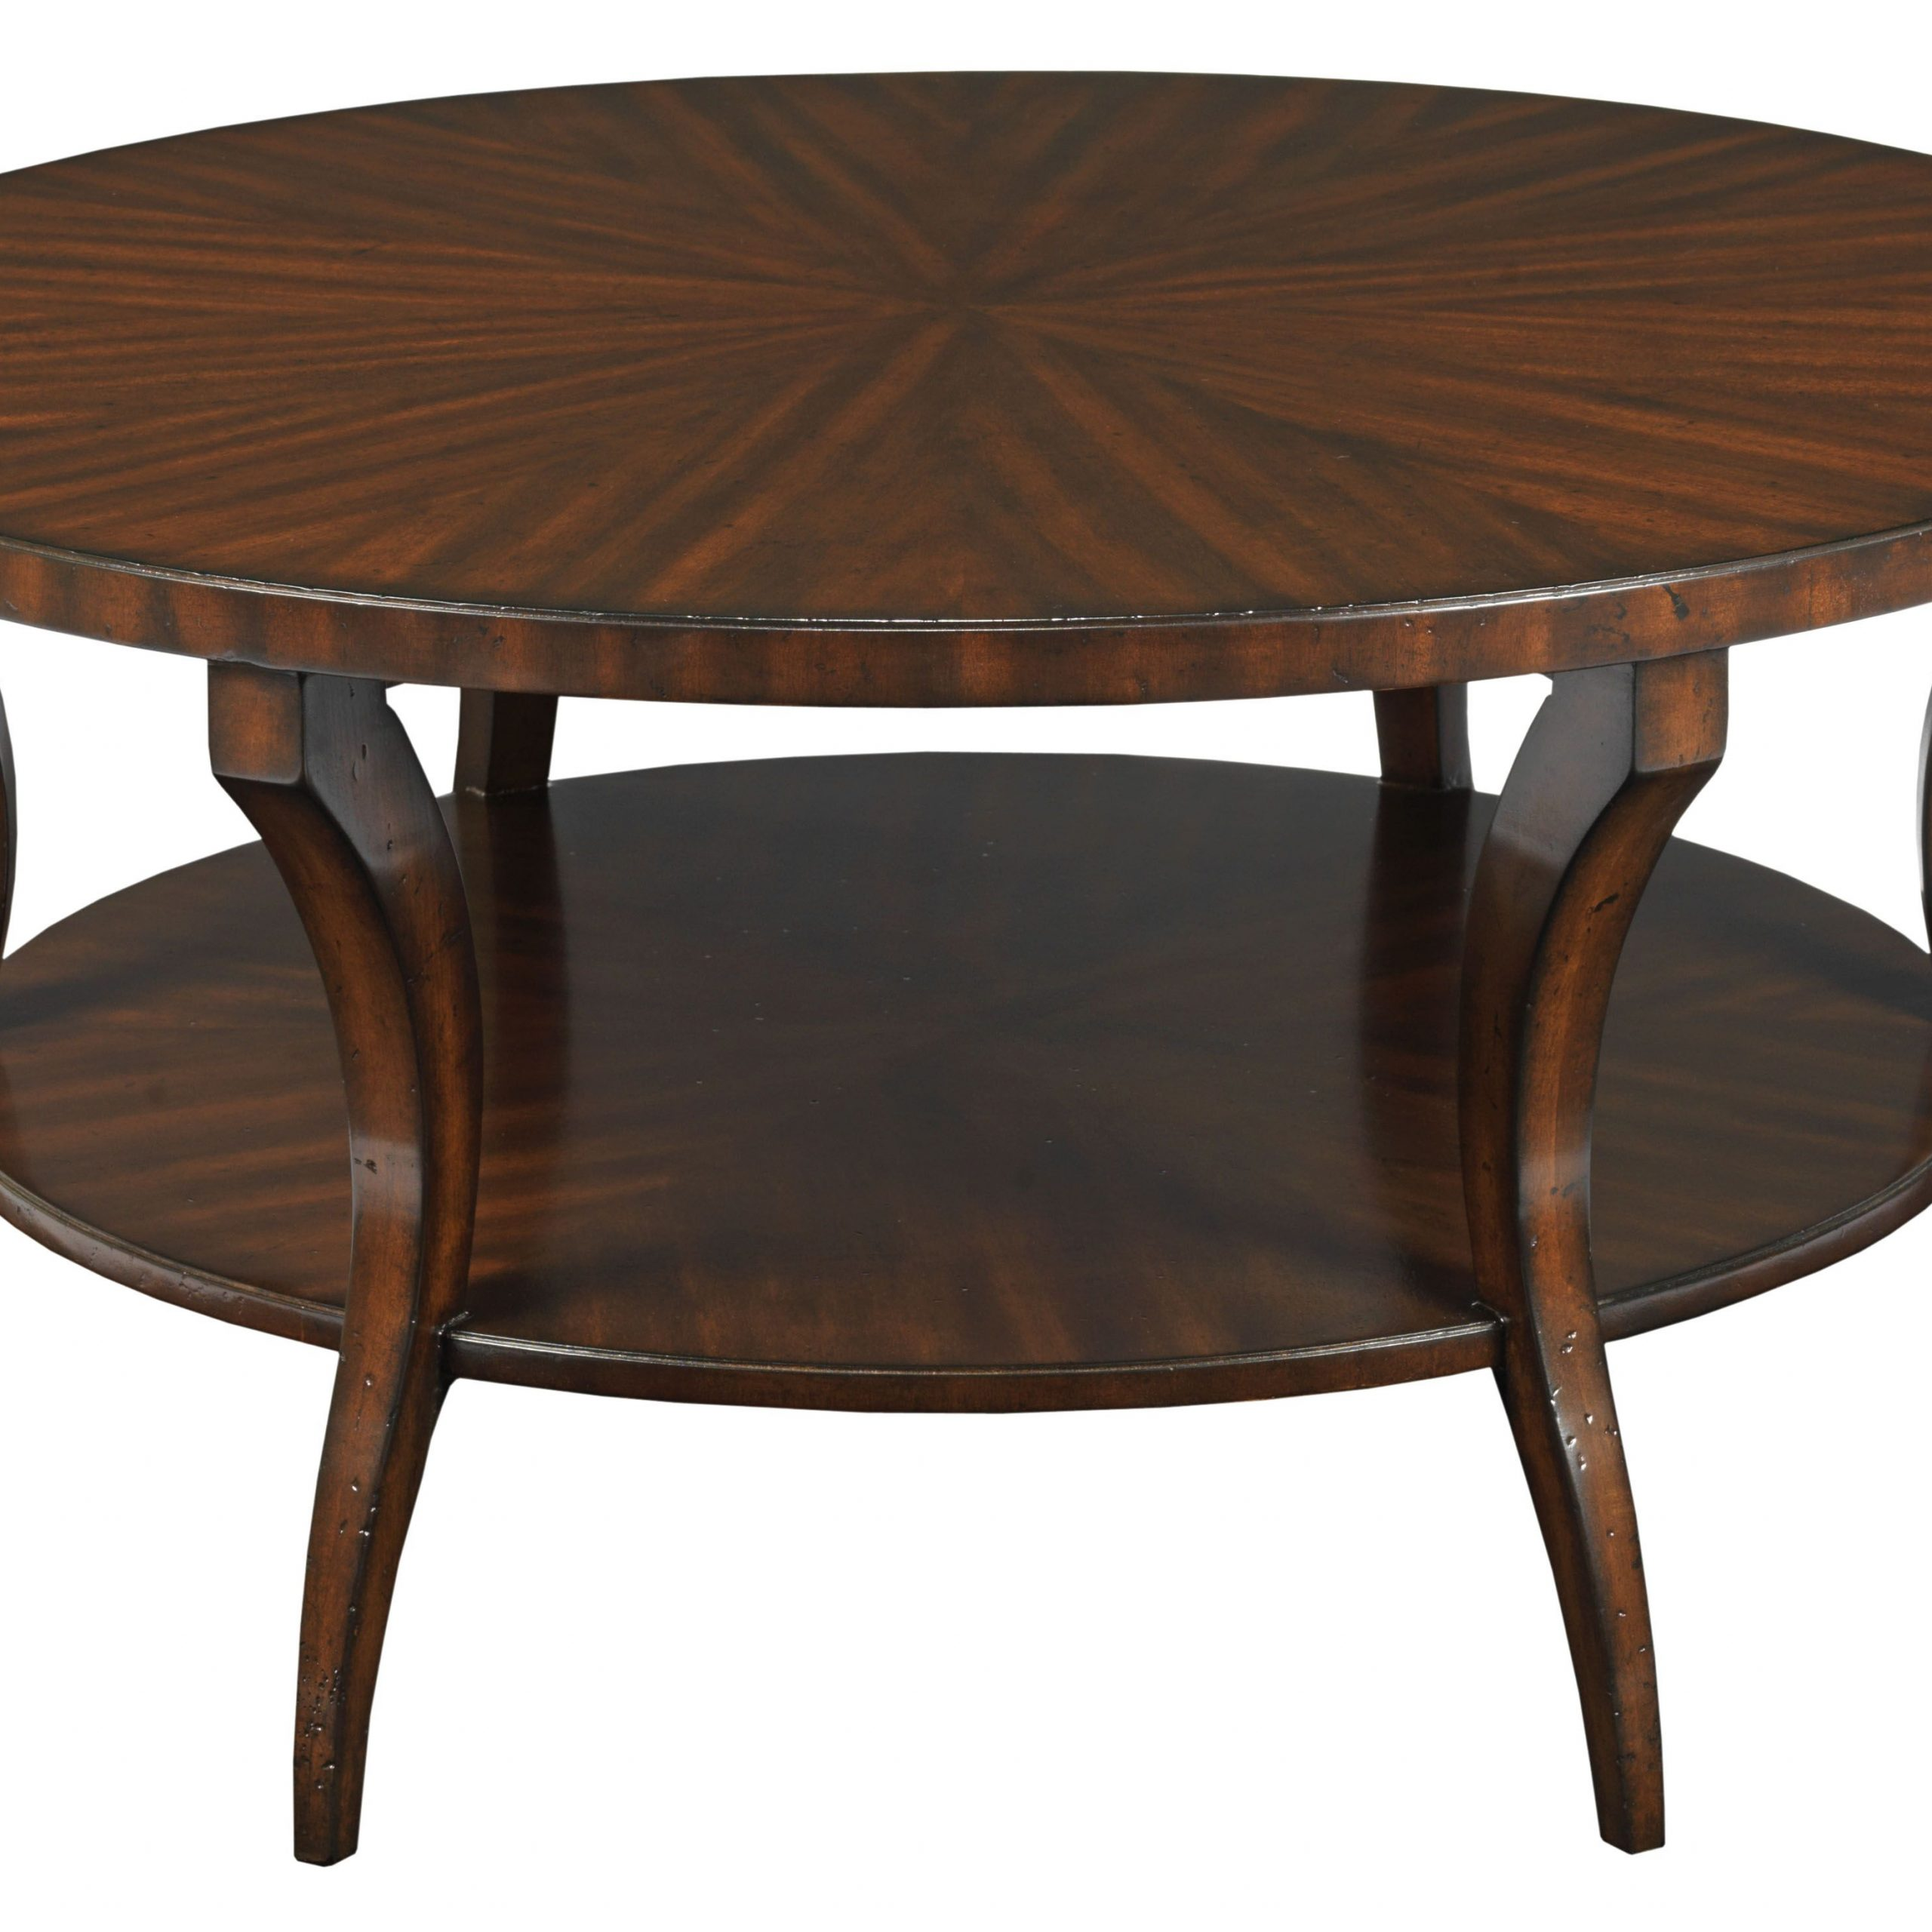 Table, Furniture, Round For Most Up To Date Acacia Wood Medley Medium Dining Tables With Metal Base (View 11 of 26)